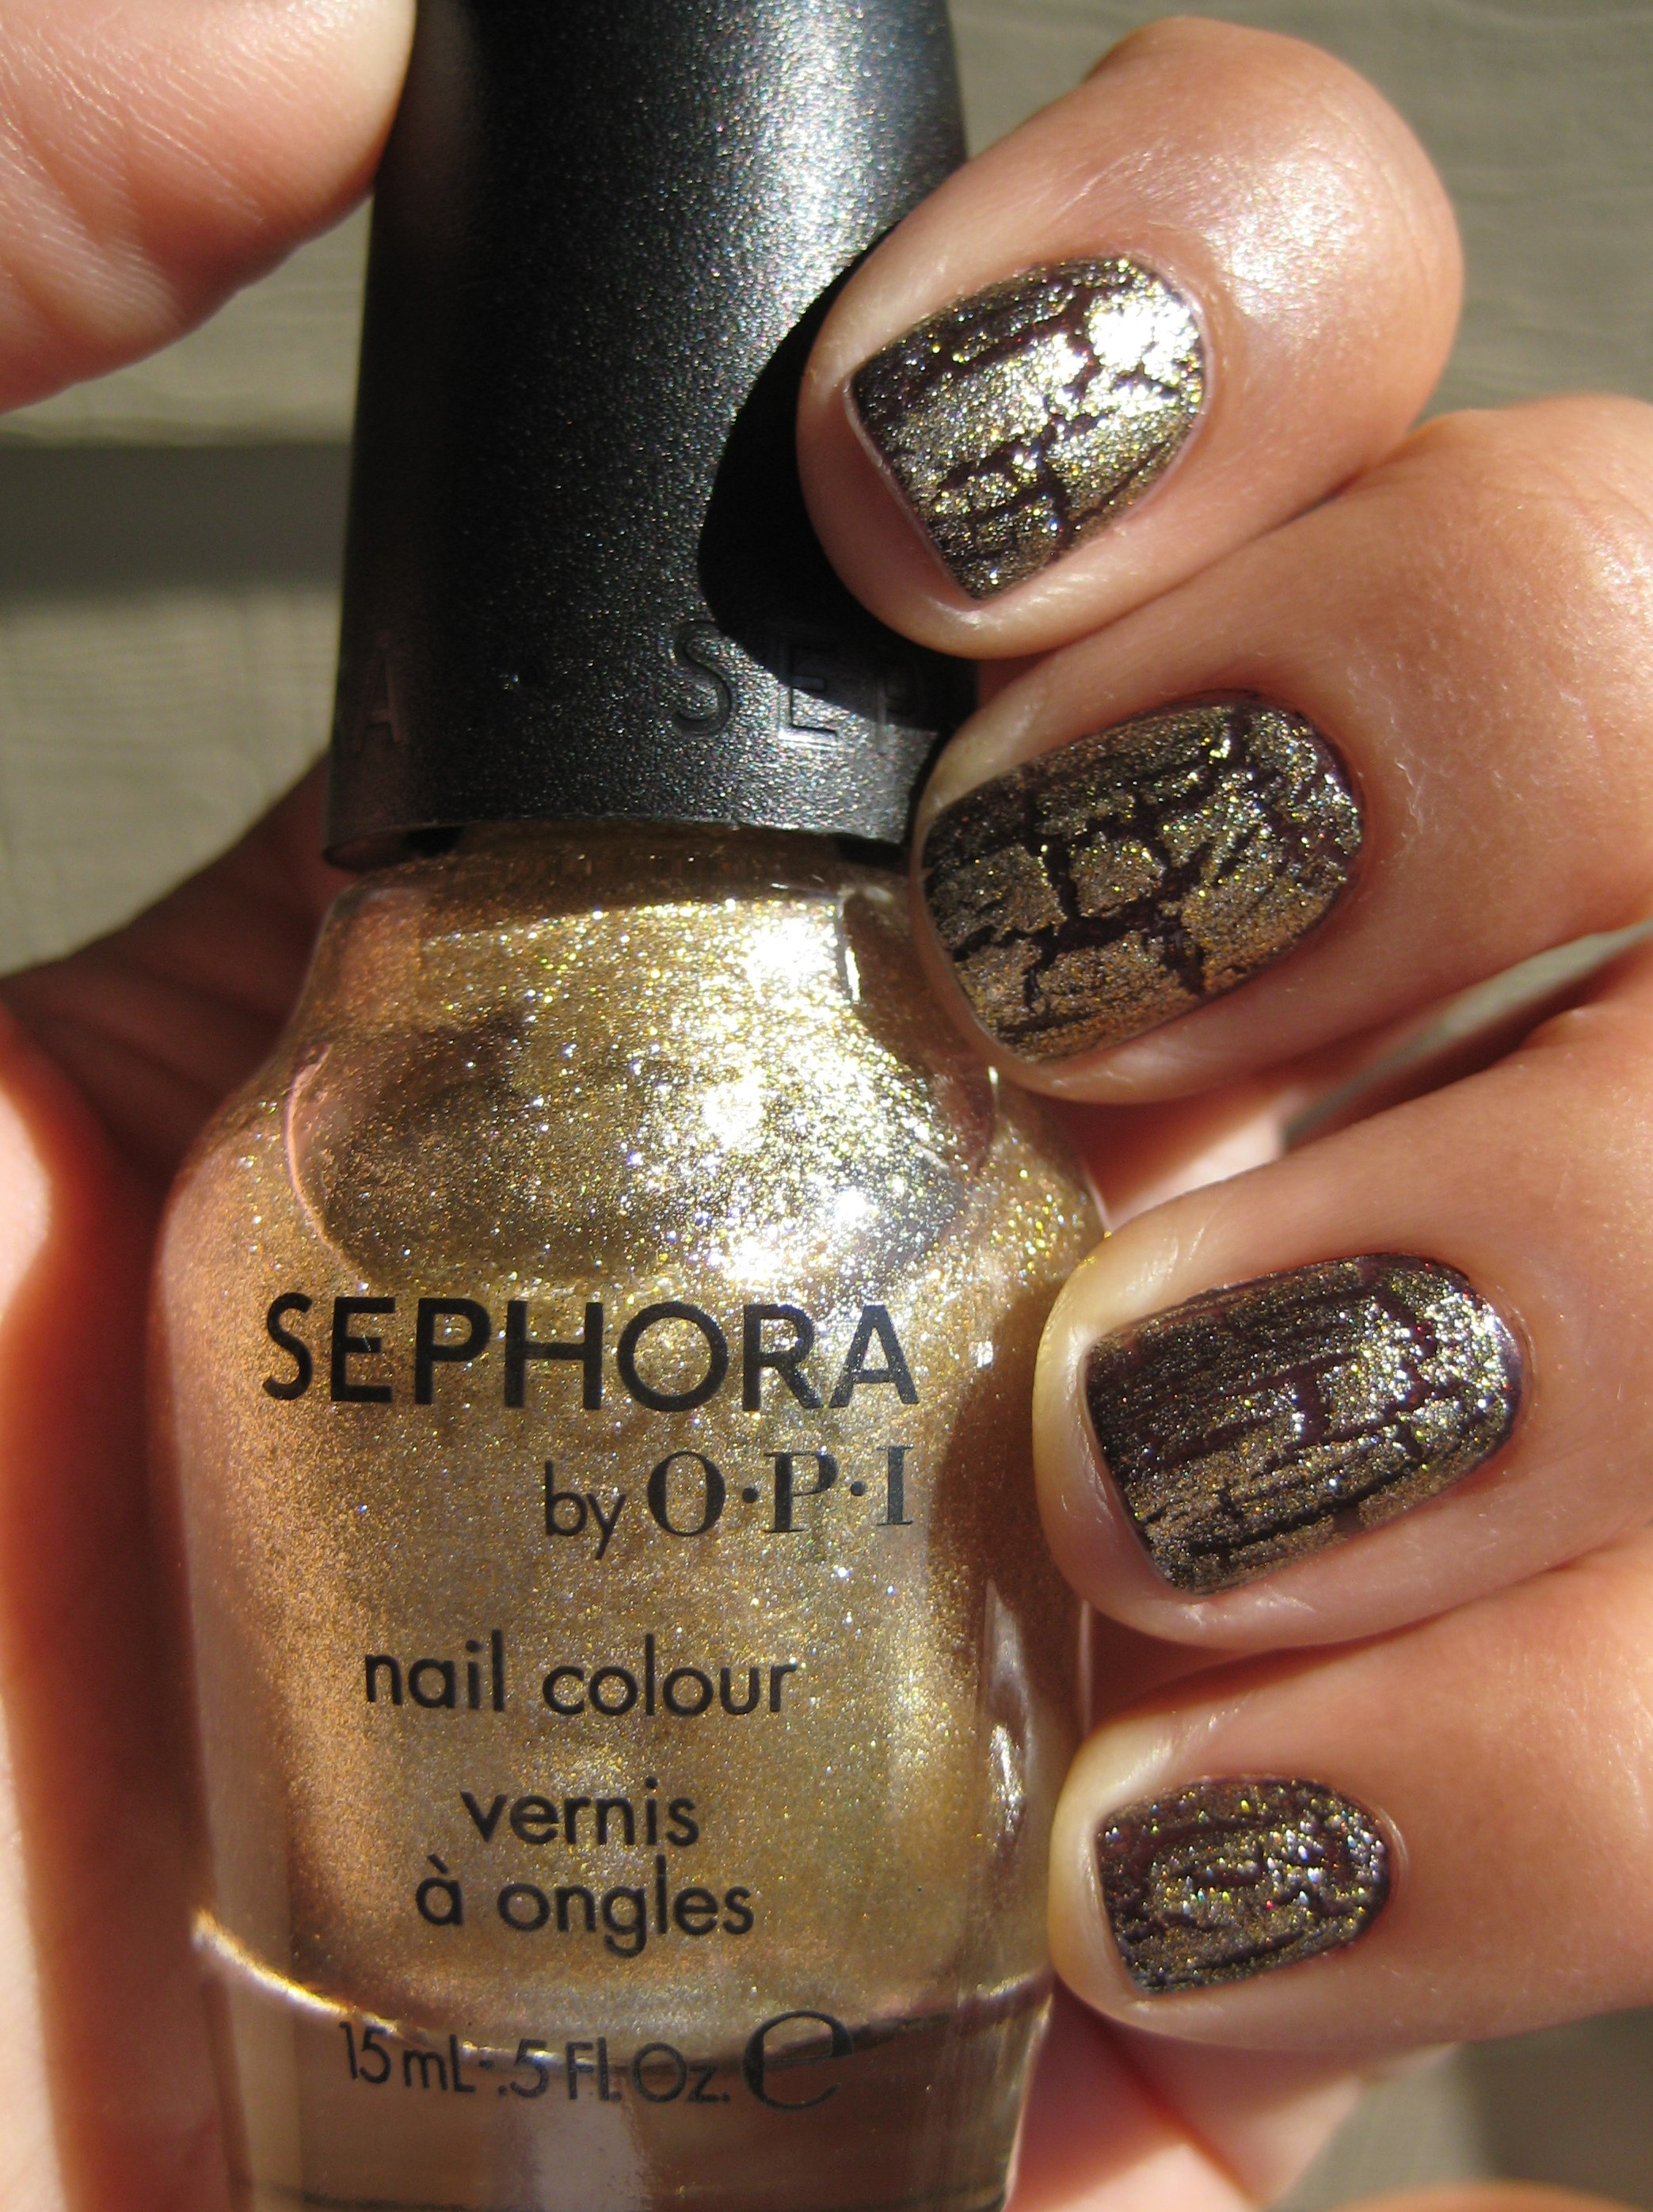 Jenn wearing Sephora by OPI Blasted Gold top coat over OPI Nail Lacquer in Tease-y Does It